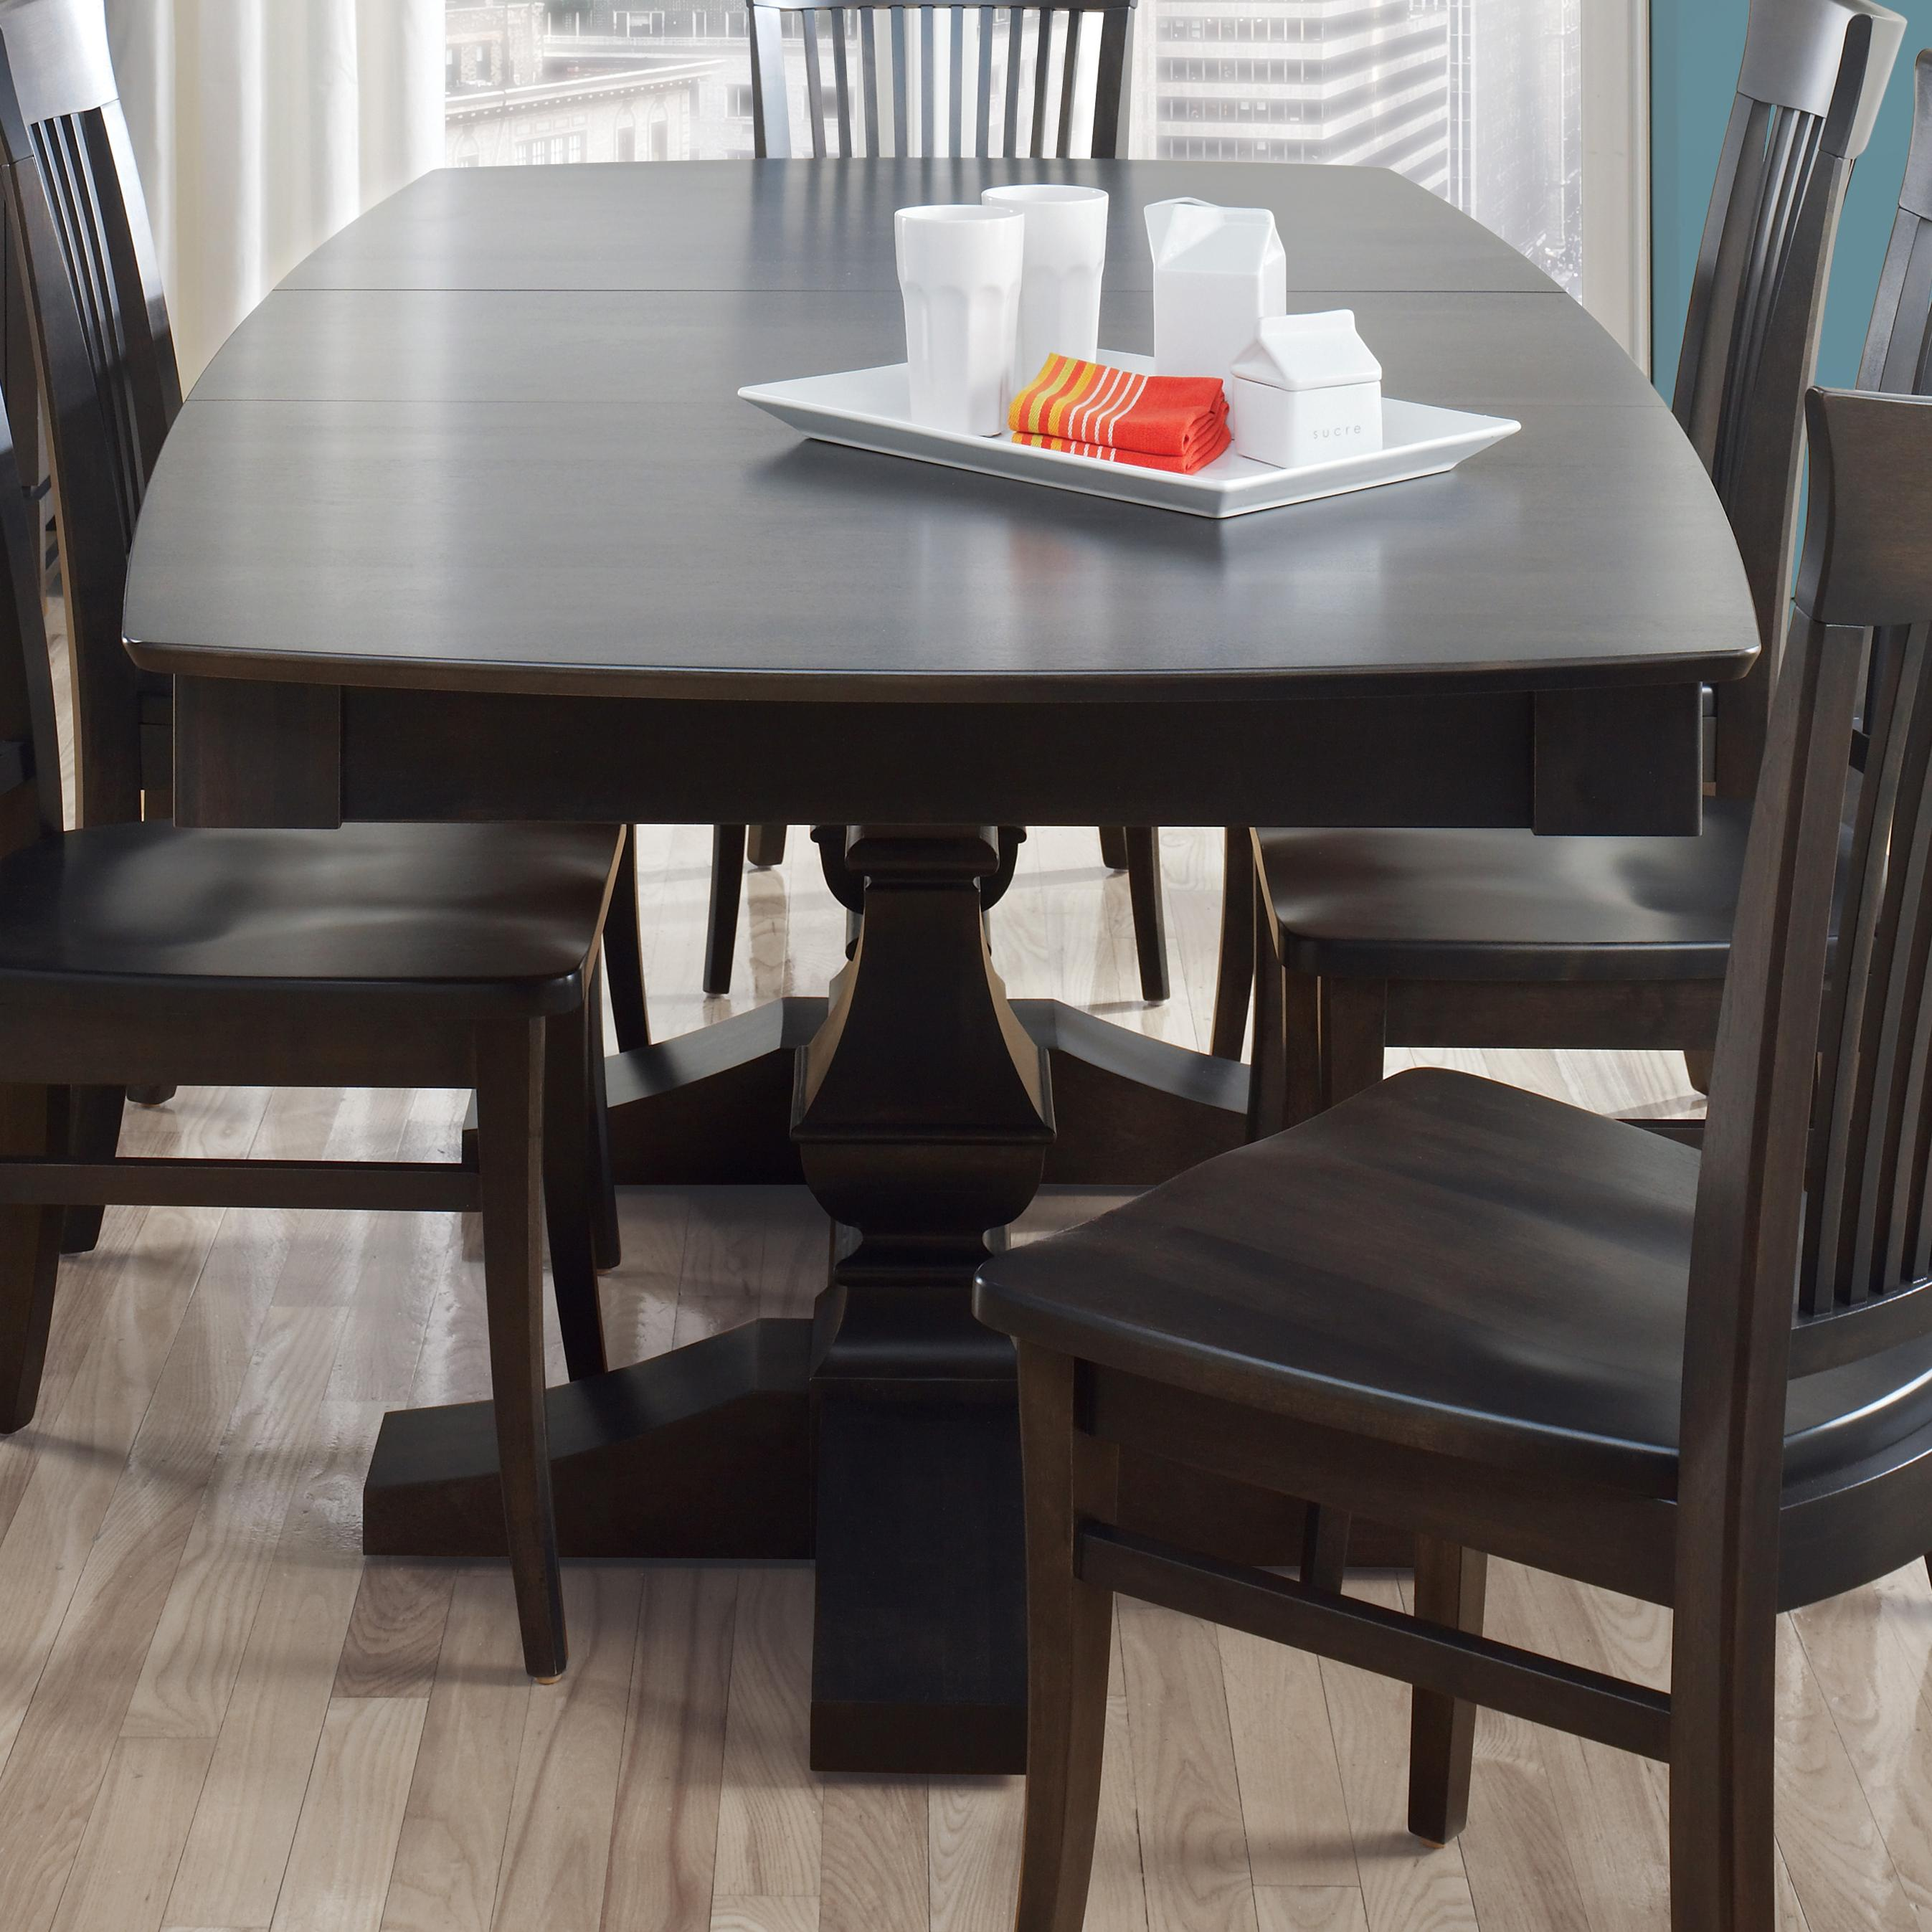 Custom Dining Customizable Boat Shape Table by Canadel at Dinette Depot